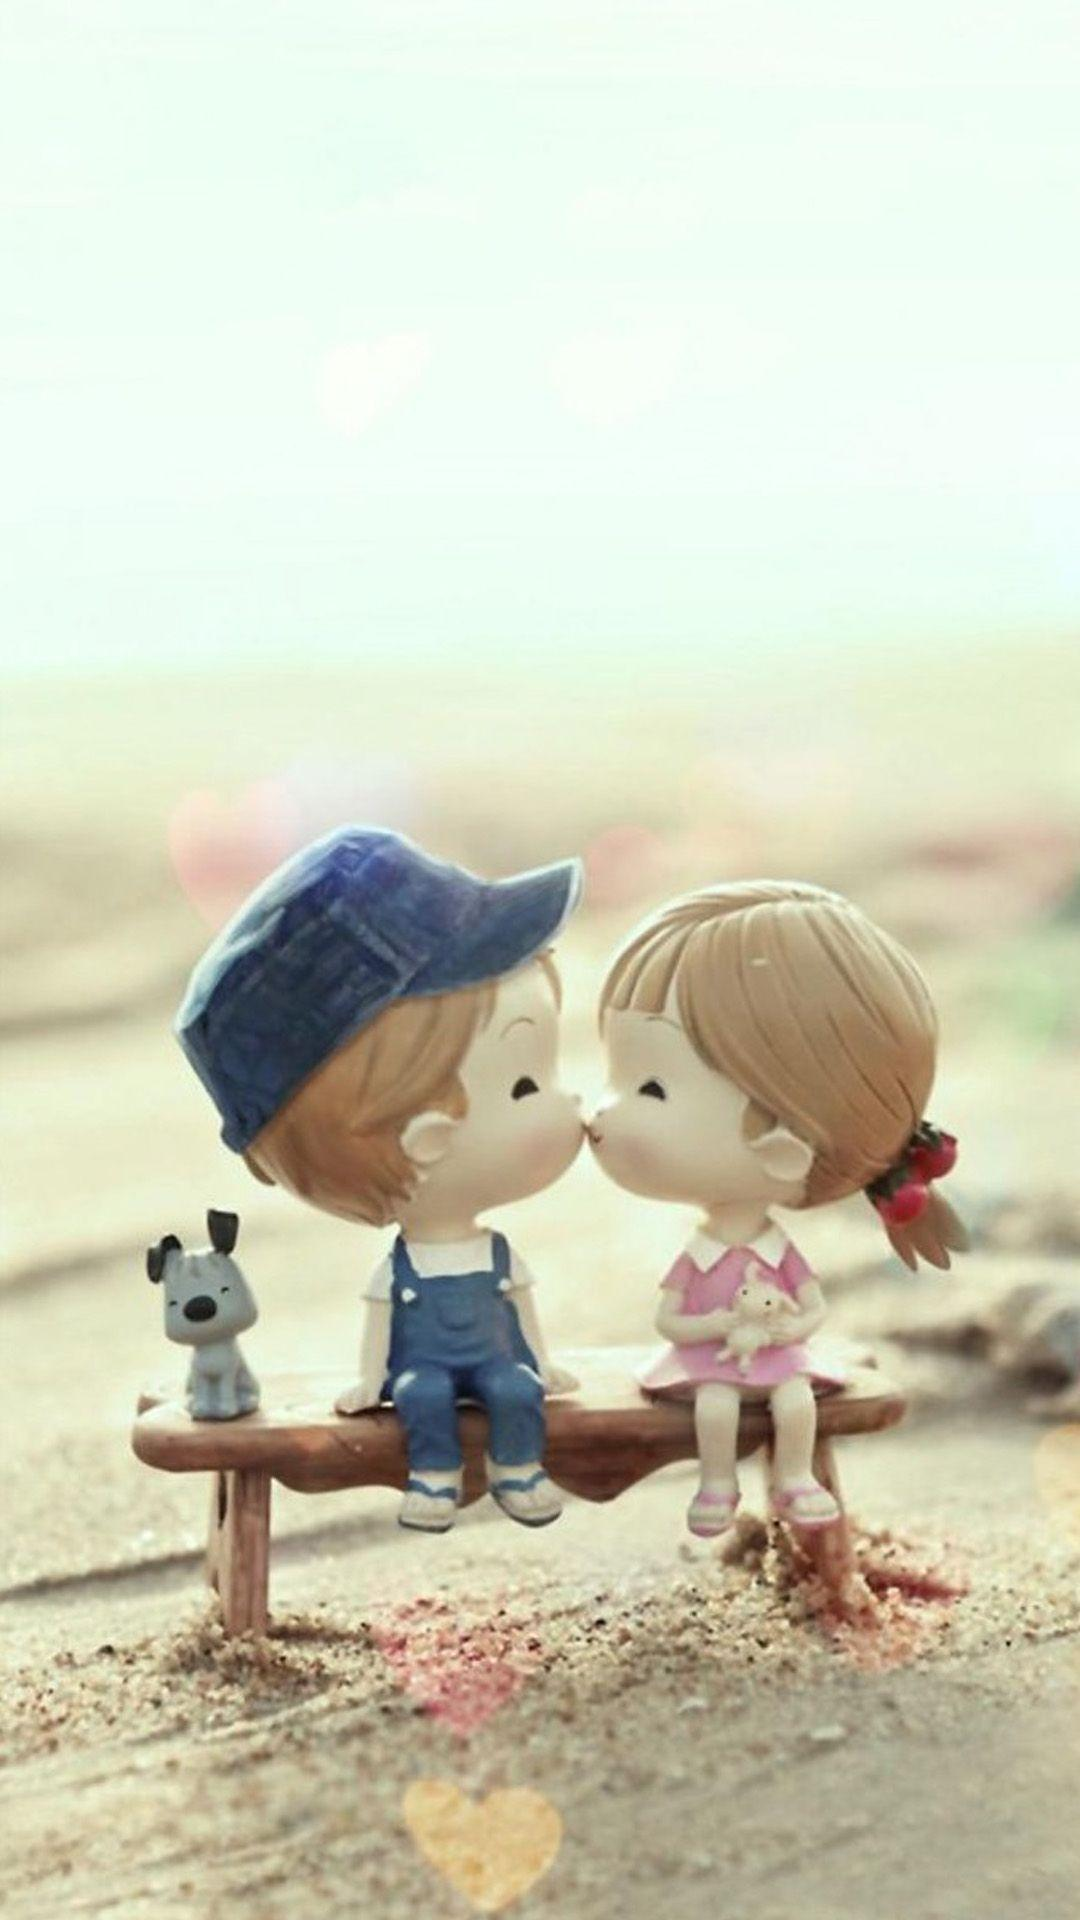 Cartoon Beautiful Love Romance Cute Couple Pic